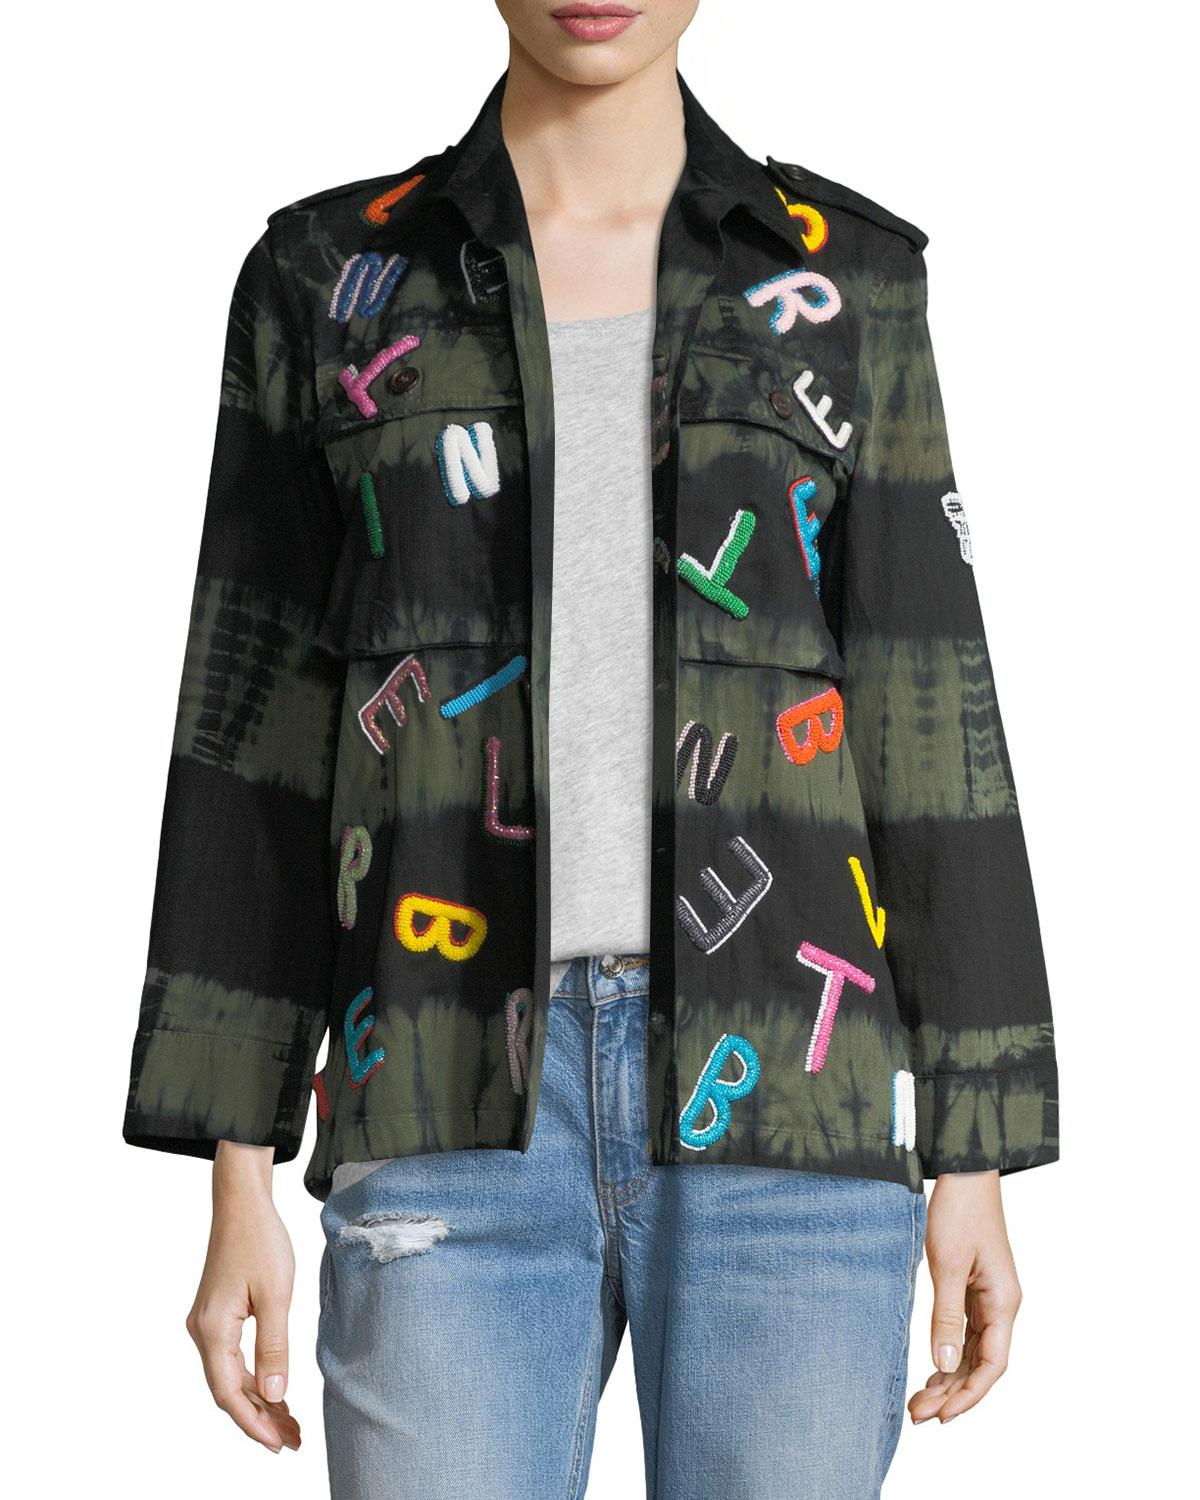 06c10e73b8113 Libertine - Multicolor Tie-dye Army Jacket With Letter Embroidery - Lyst.  View fullscreen